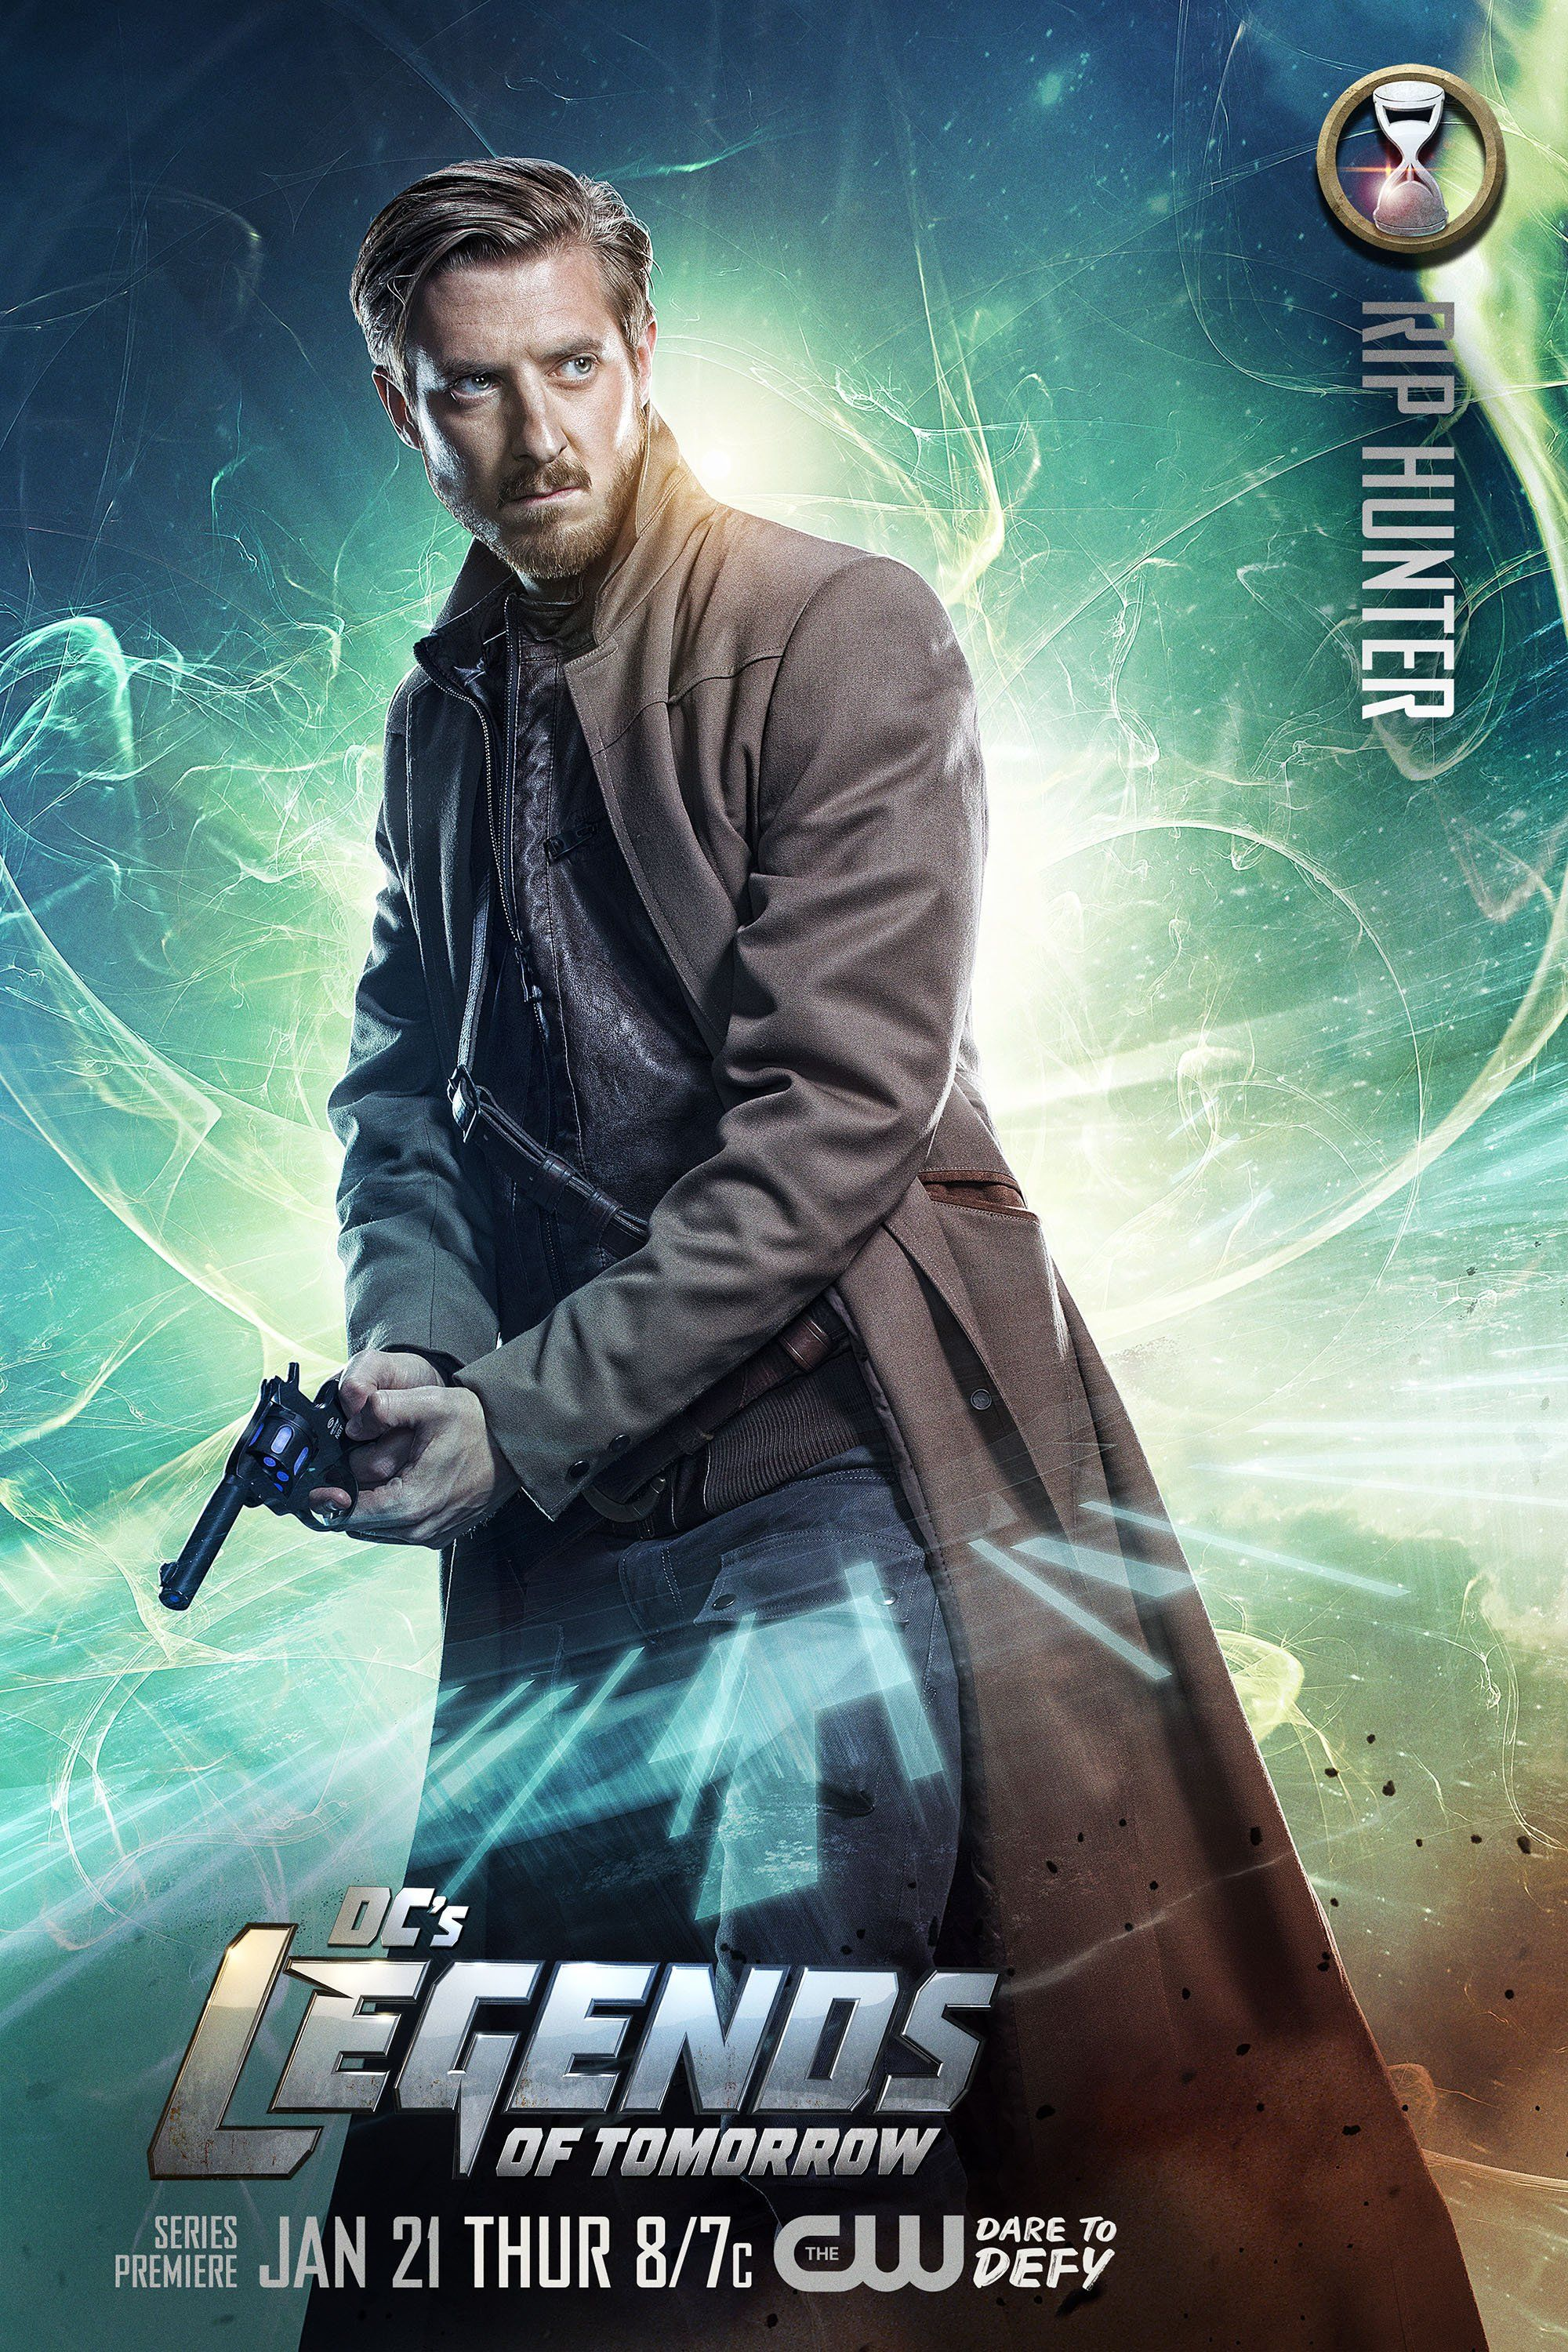 Arthur Darvill As Rip Hunter In His 'dc's Legends Of Tomorrow' Character